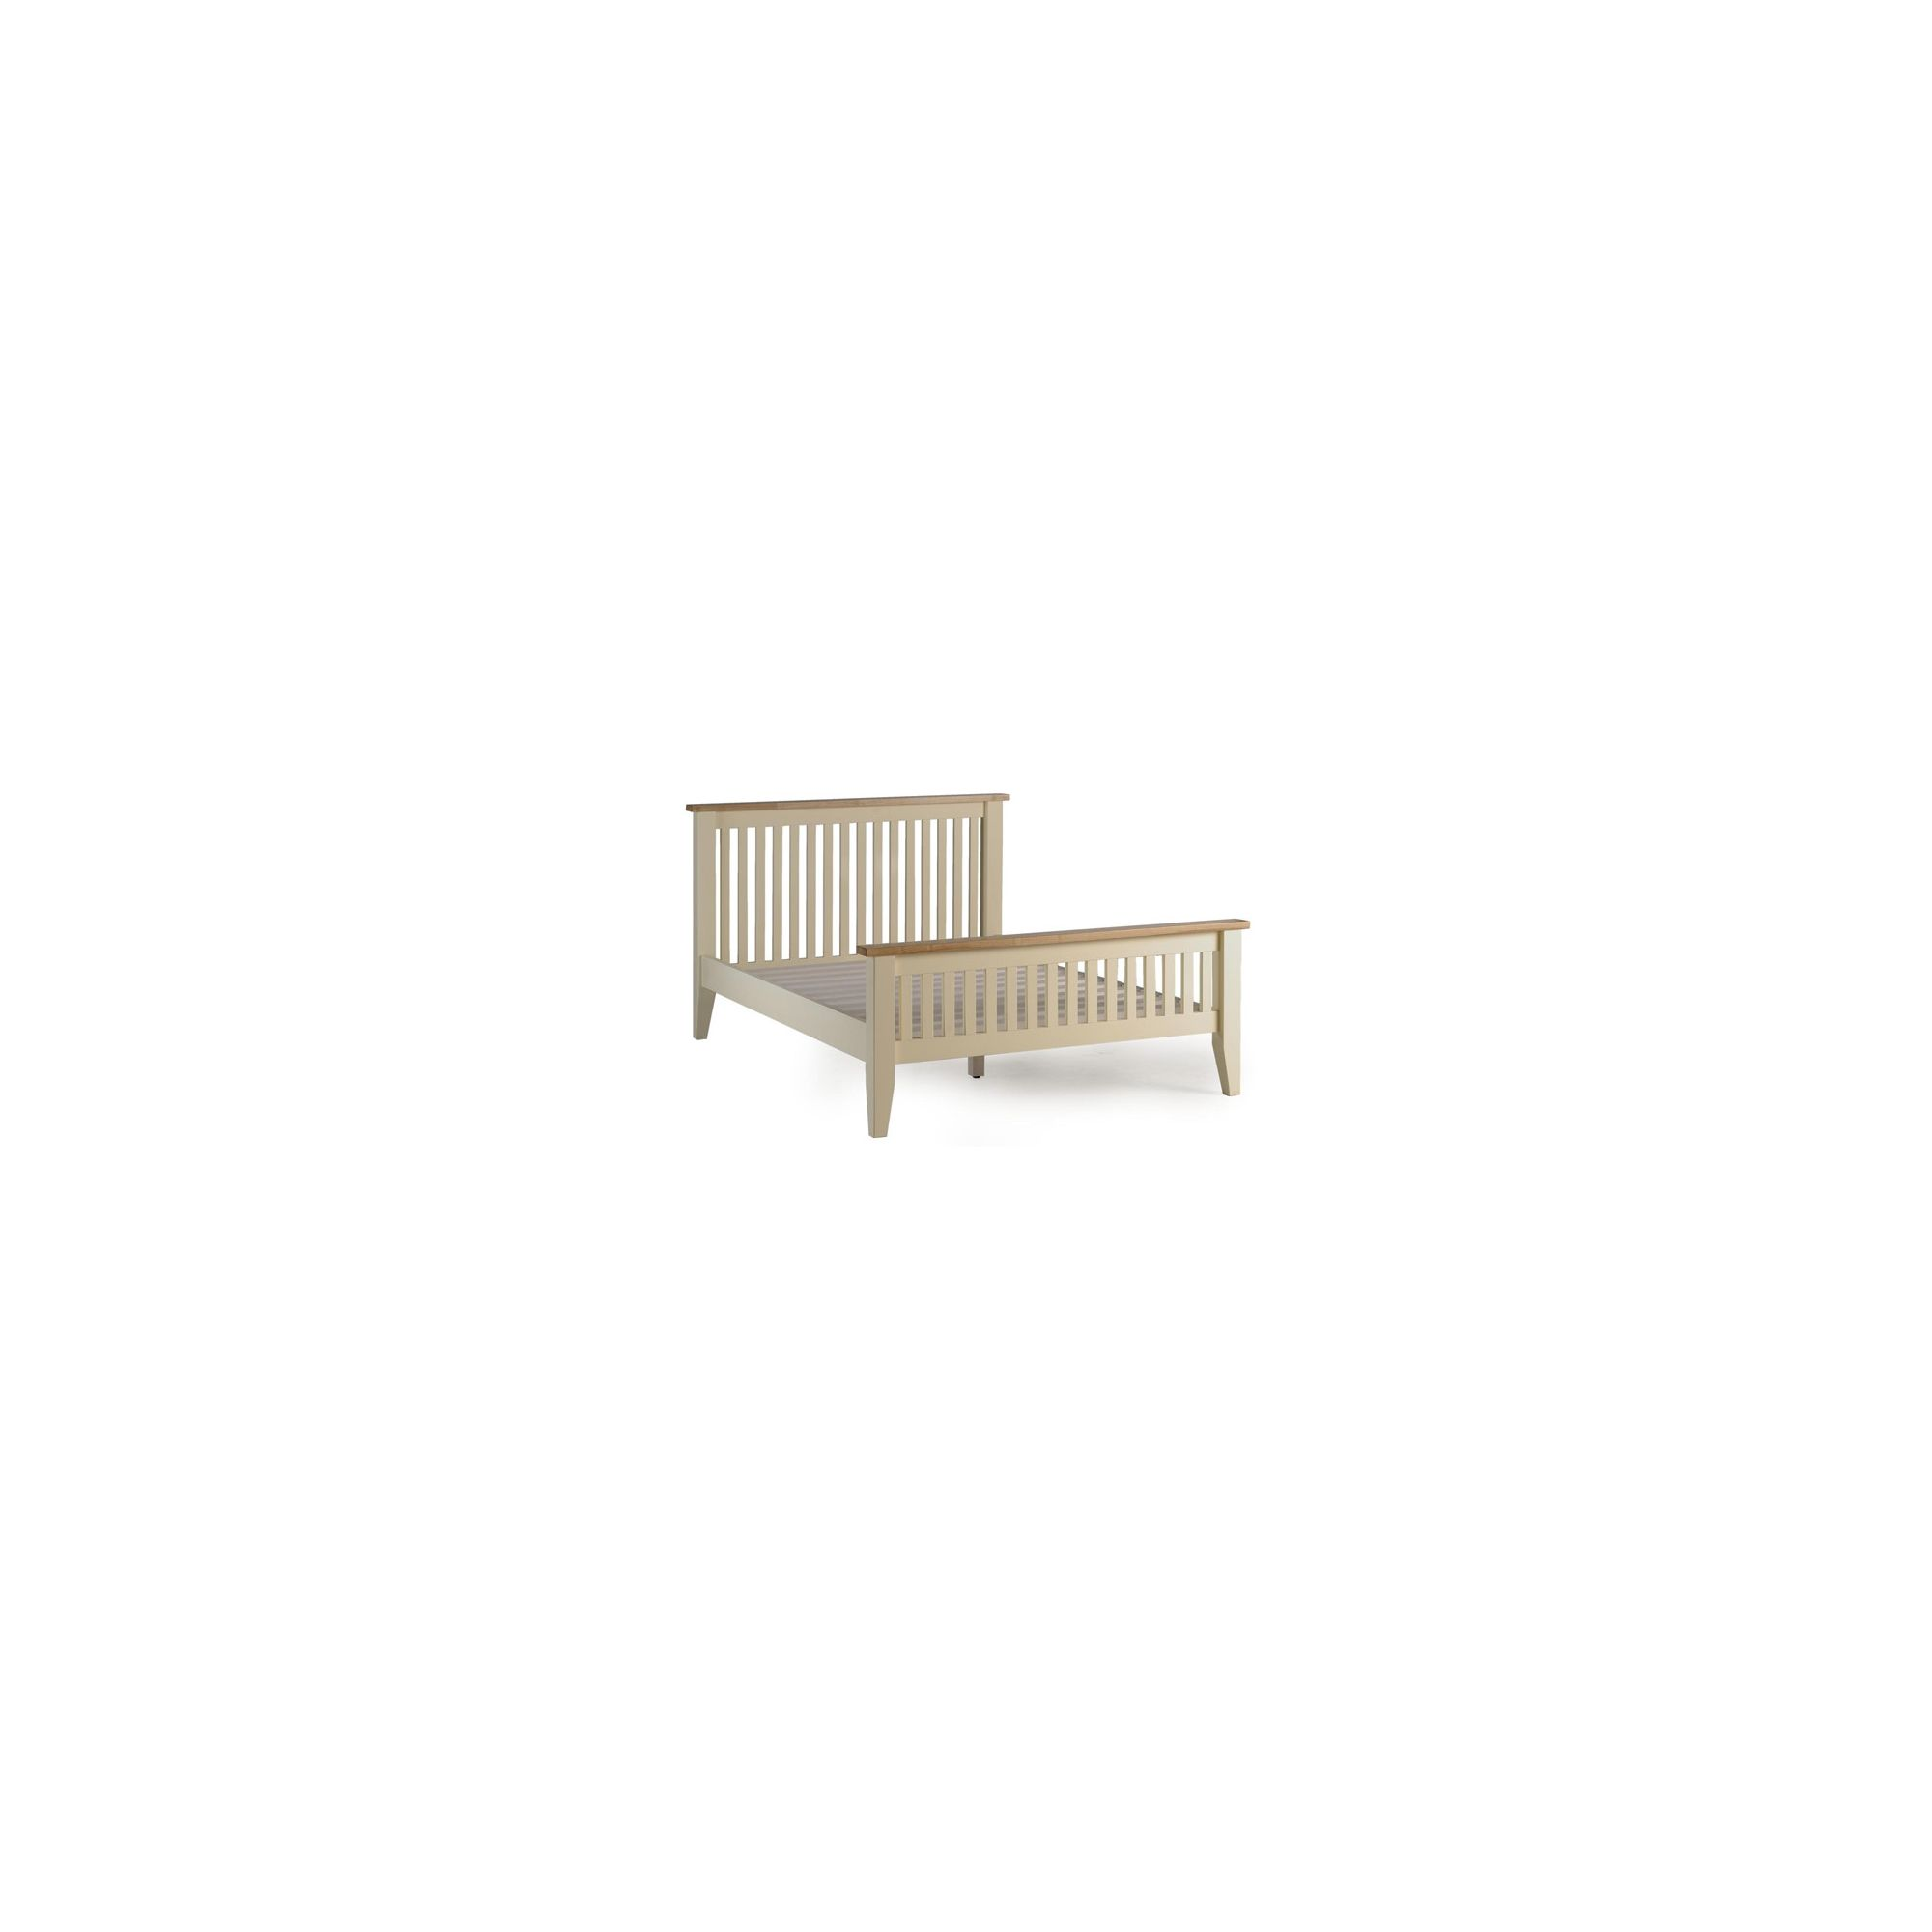 Ametis Camden Painted Bed Frame - King at Tesco Direct